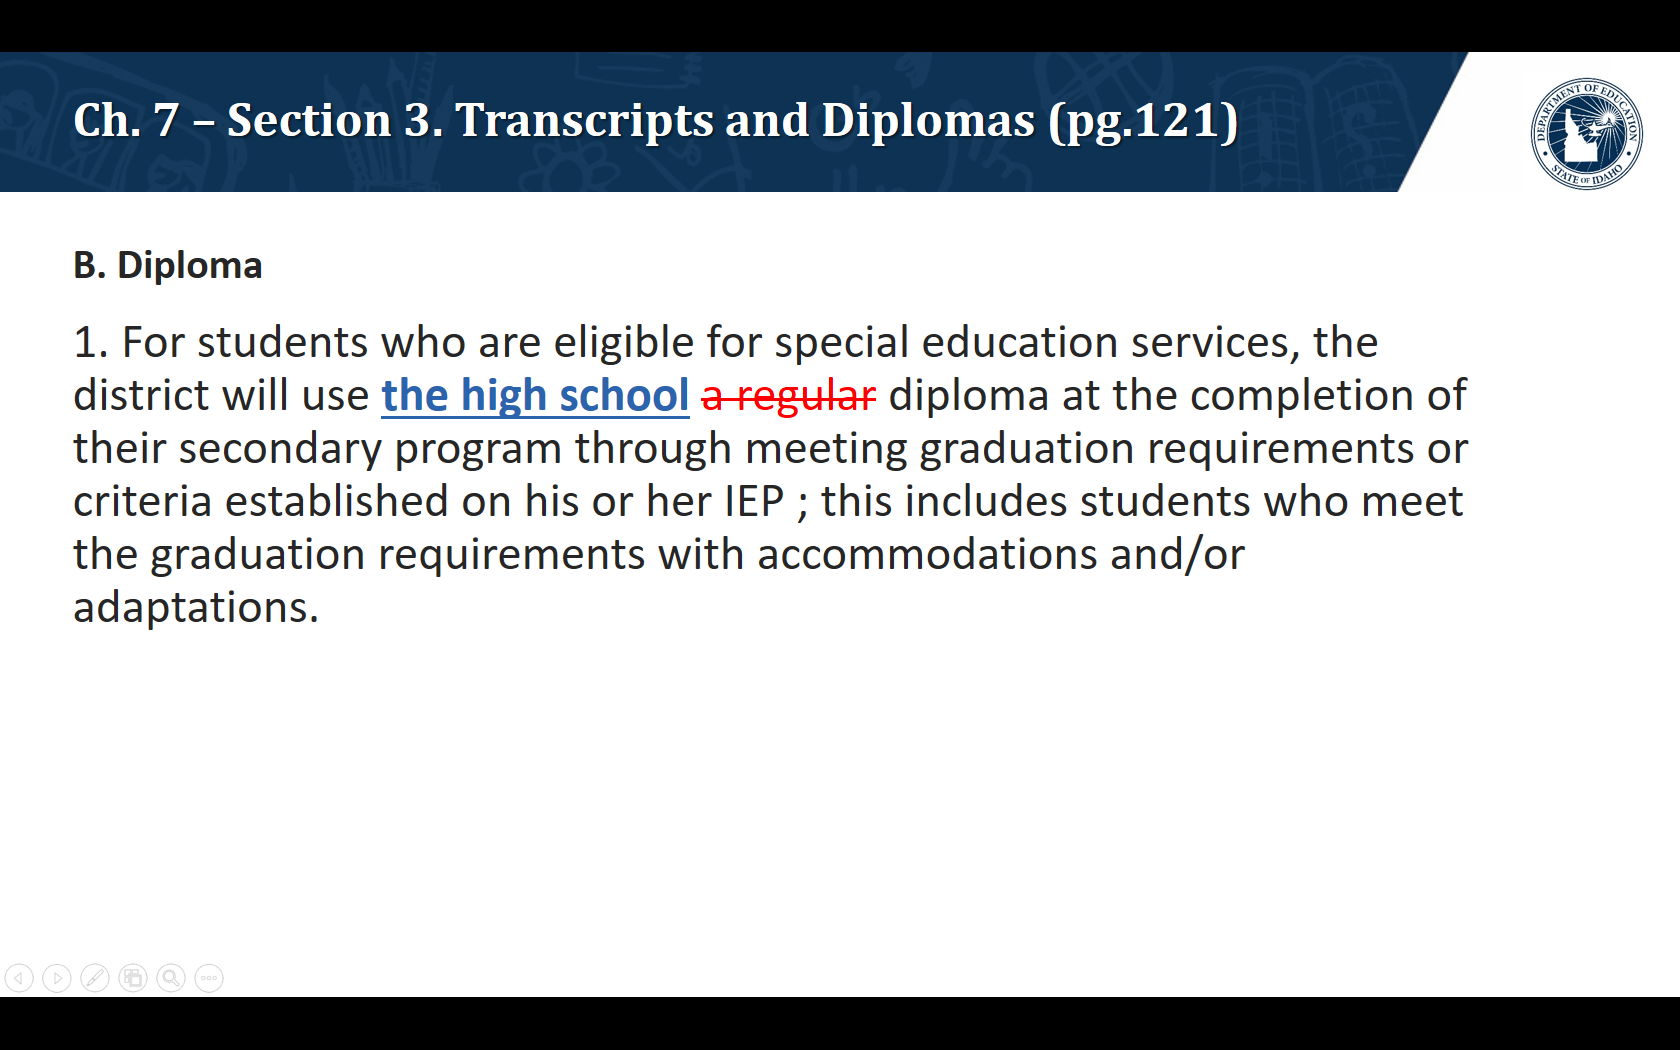 B. Diploma. 1. For students who are eligible for special education services, the district will use the high school diploma at the completion of their secondary program through meeting graduation requirements or criteria established on his or her IEP; this includes students who meet the graduation requirements with accommodations and/or adaptations.